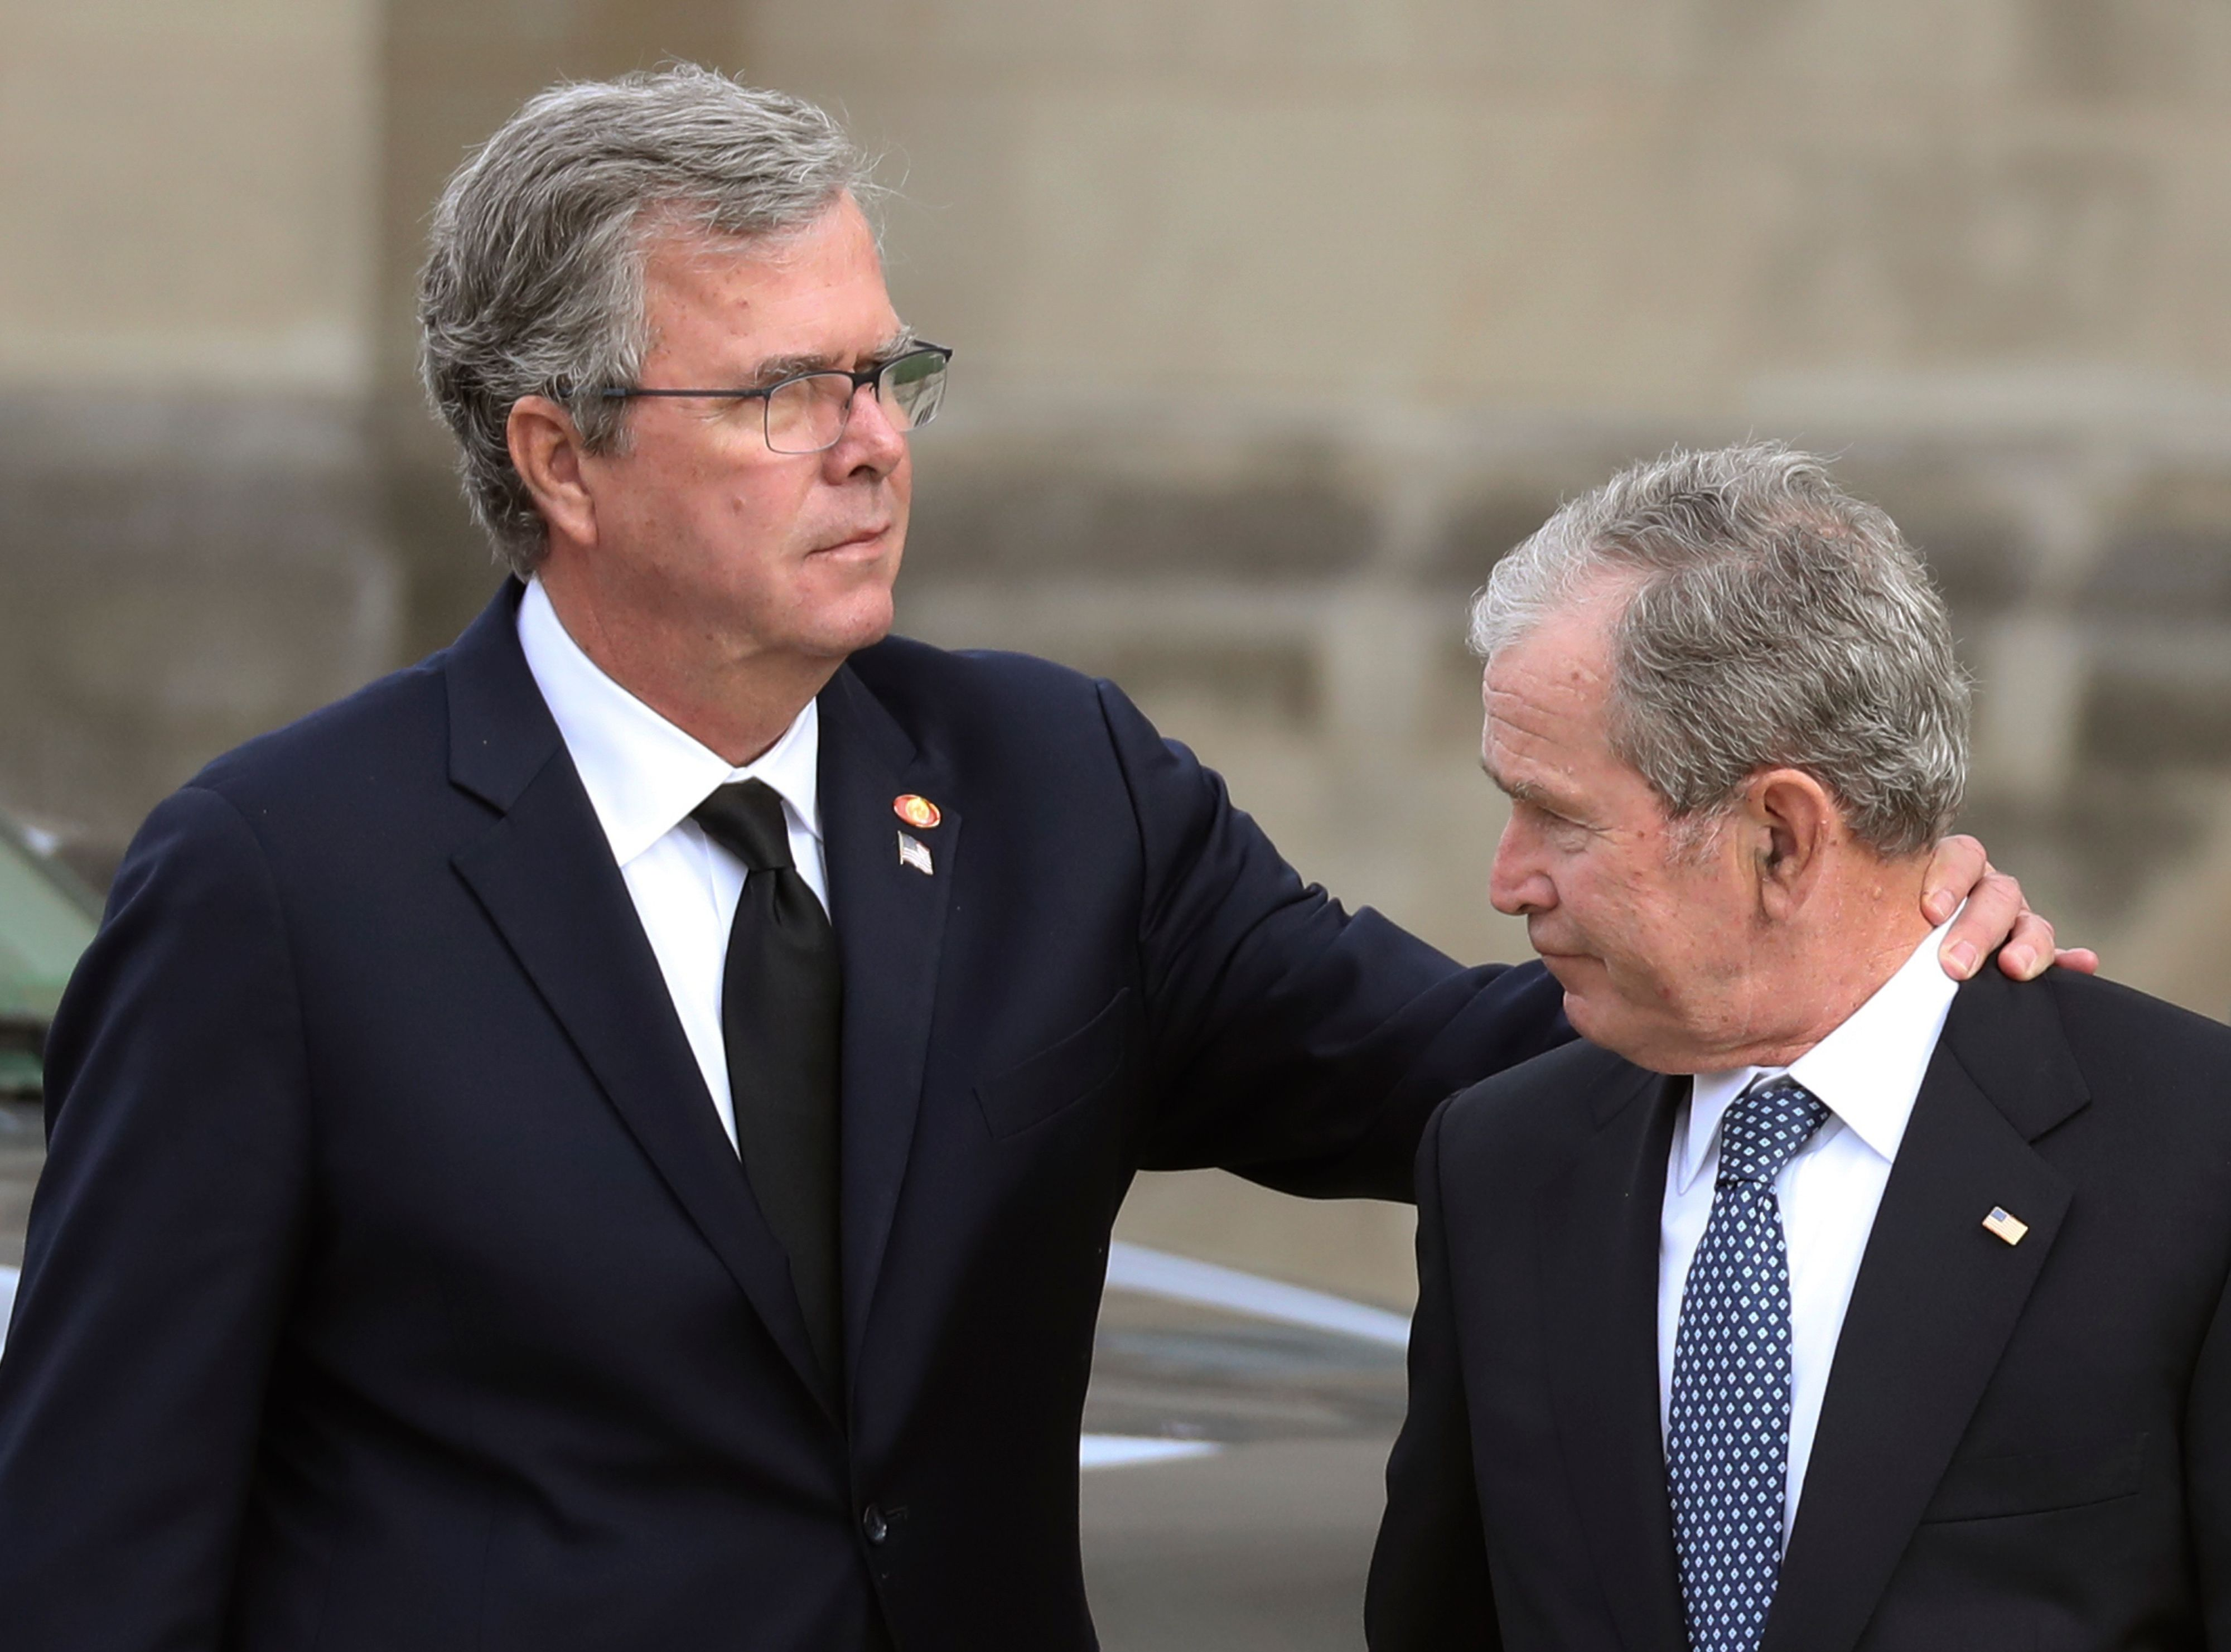 Former US President George W. Bush (r.) and his brother, former Florida Gov. Jeb Bush, arrive for the funeral service for their father, former US President George H. W. Bush Wednesday.